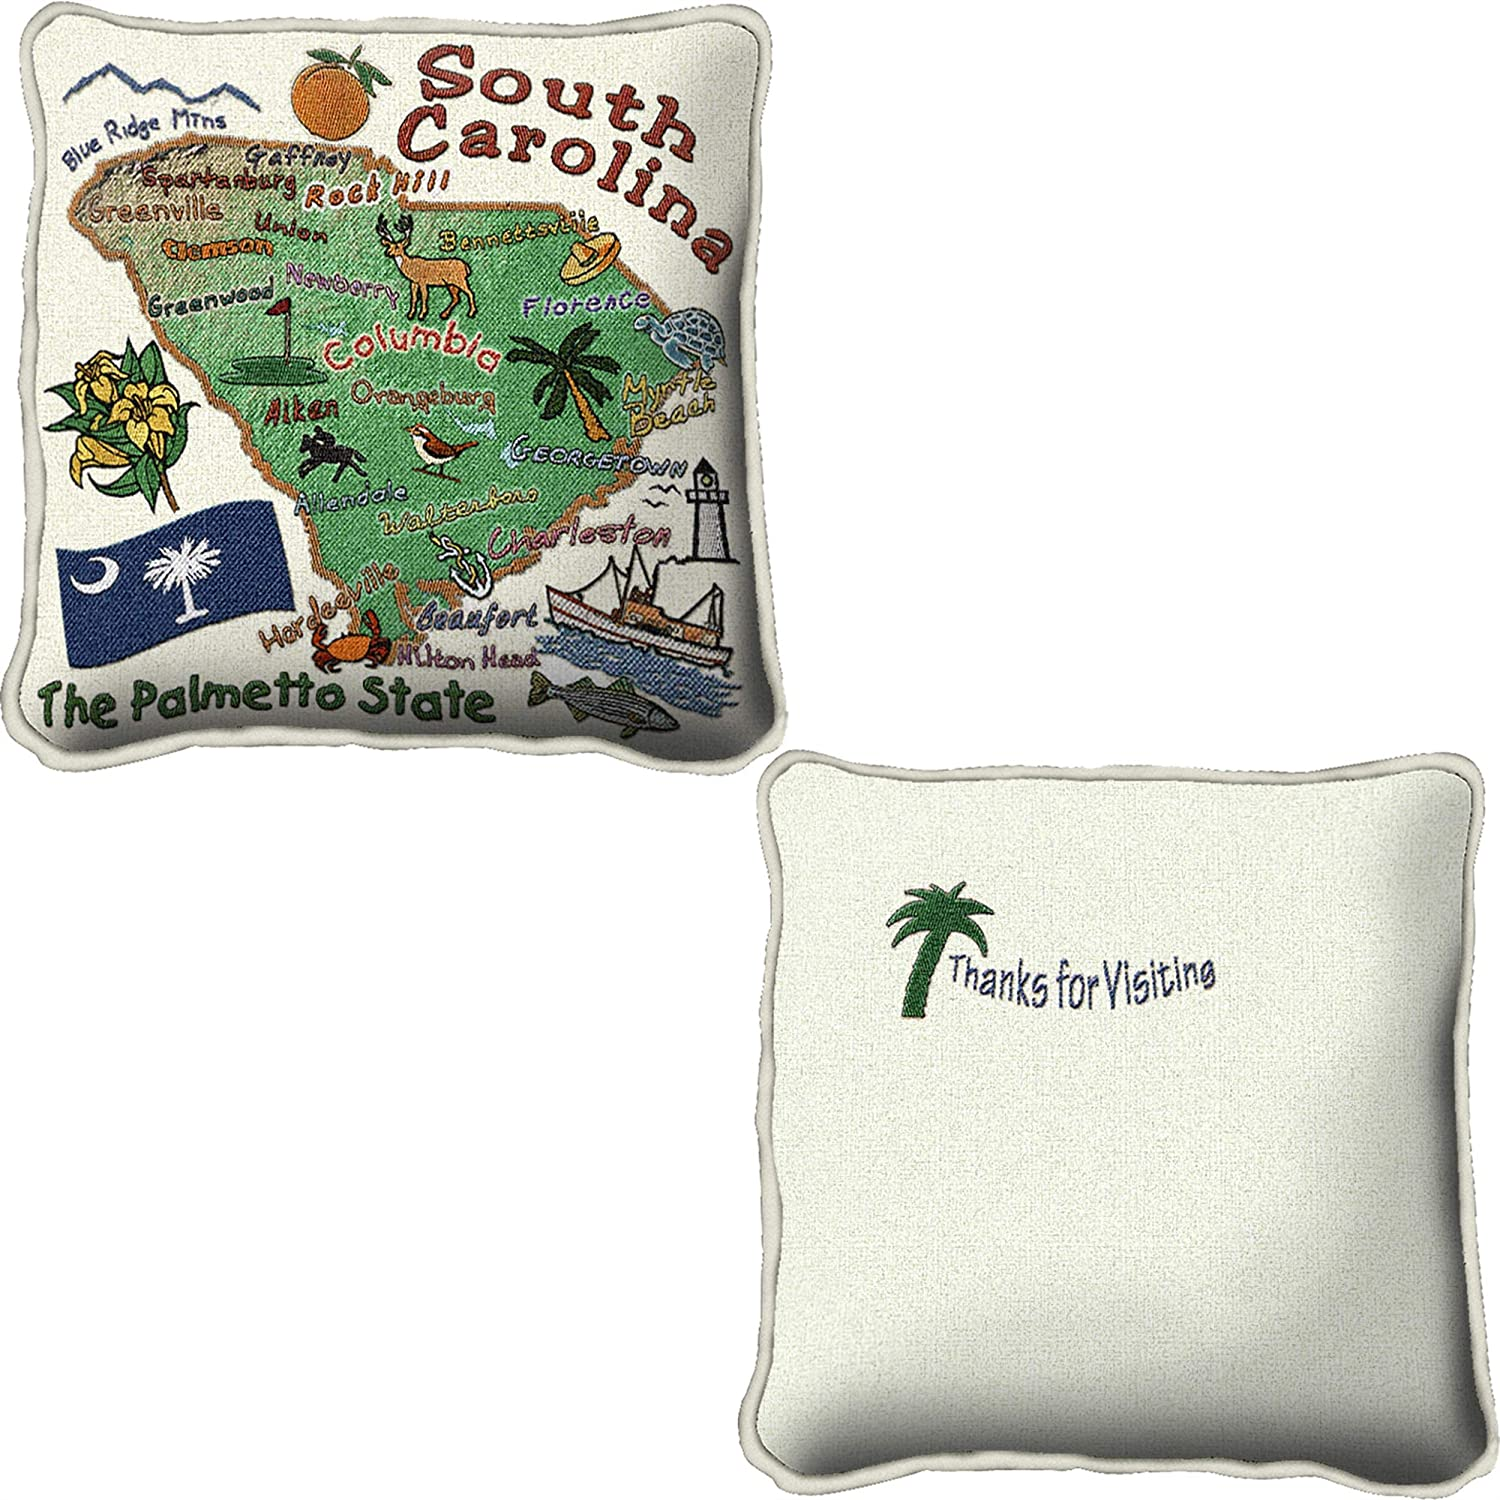 Hand Finished Pillow Cover Woven from Cotton Made in The USA Pure Country Weavers South Carolina 24x24